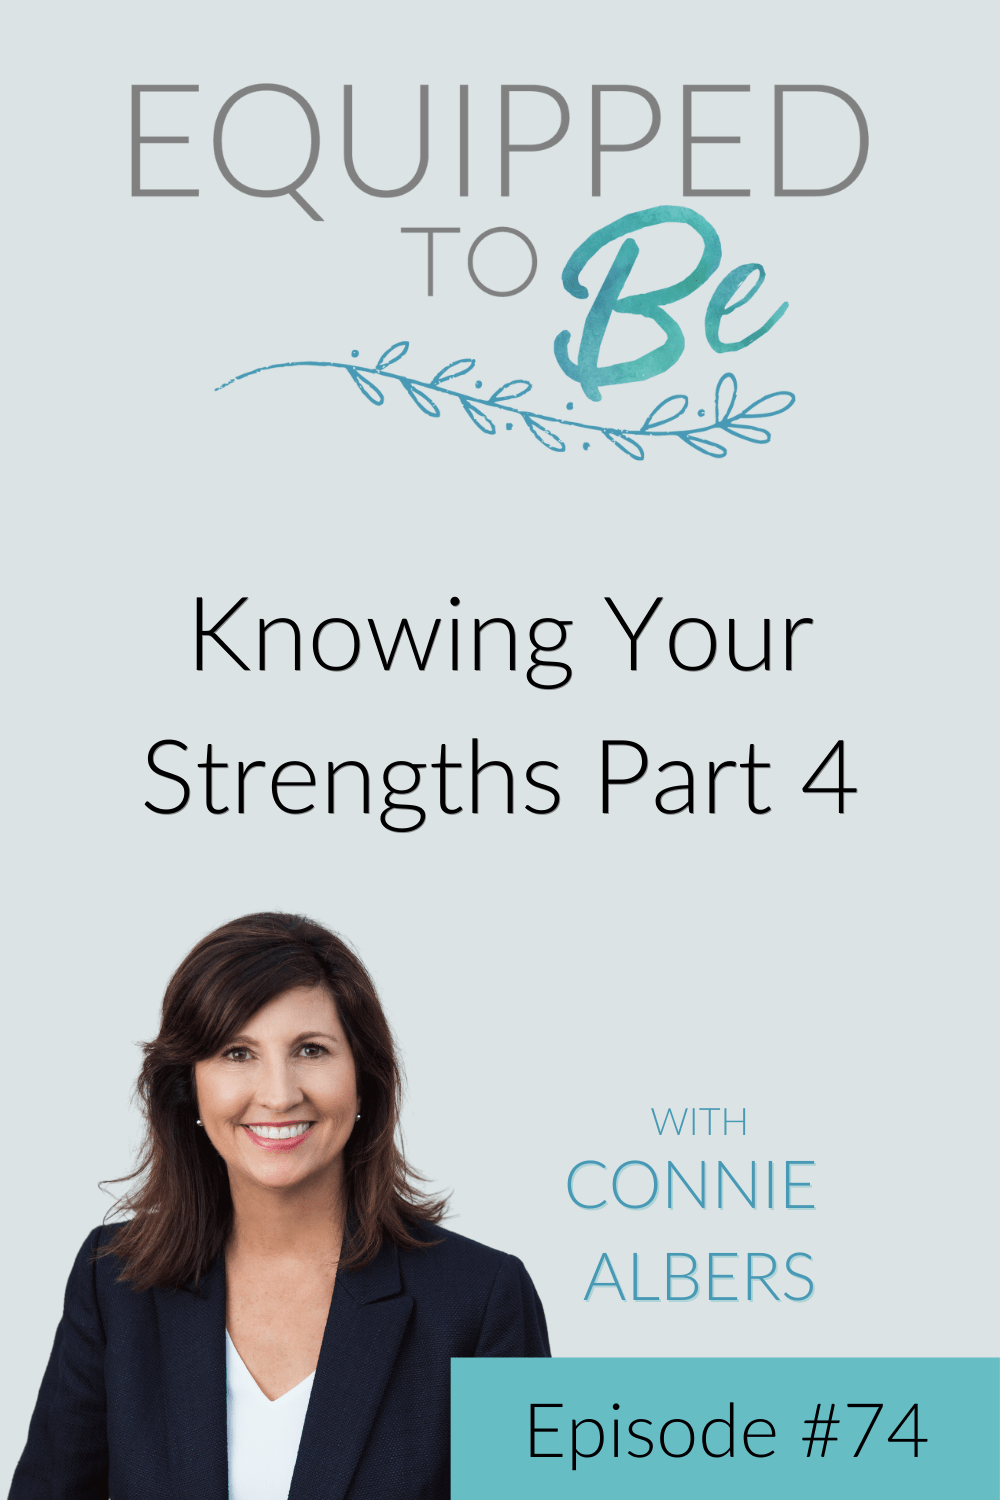 Knowing Your Strengths Part 4 - ETB #74